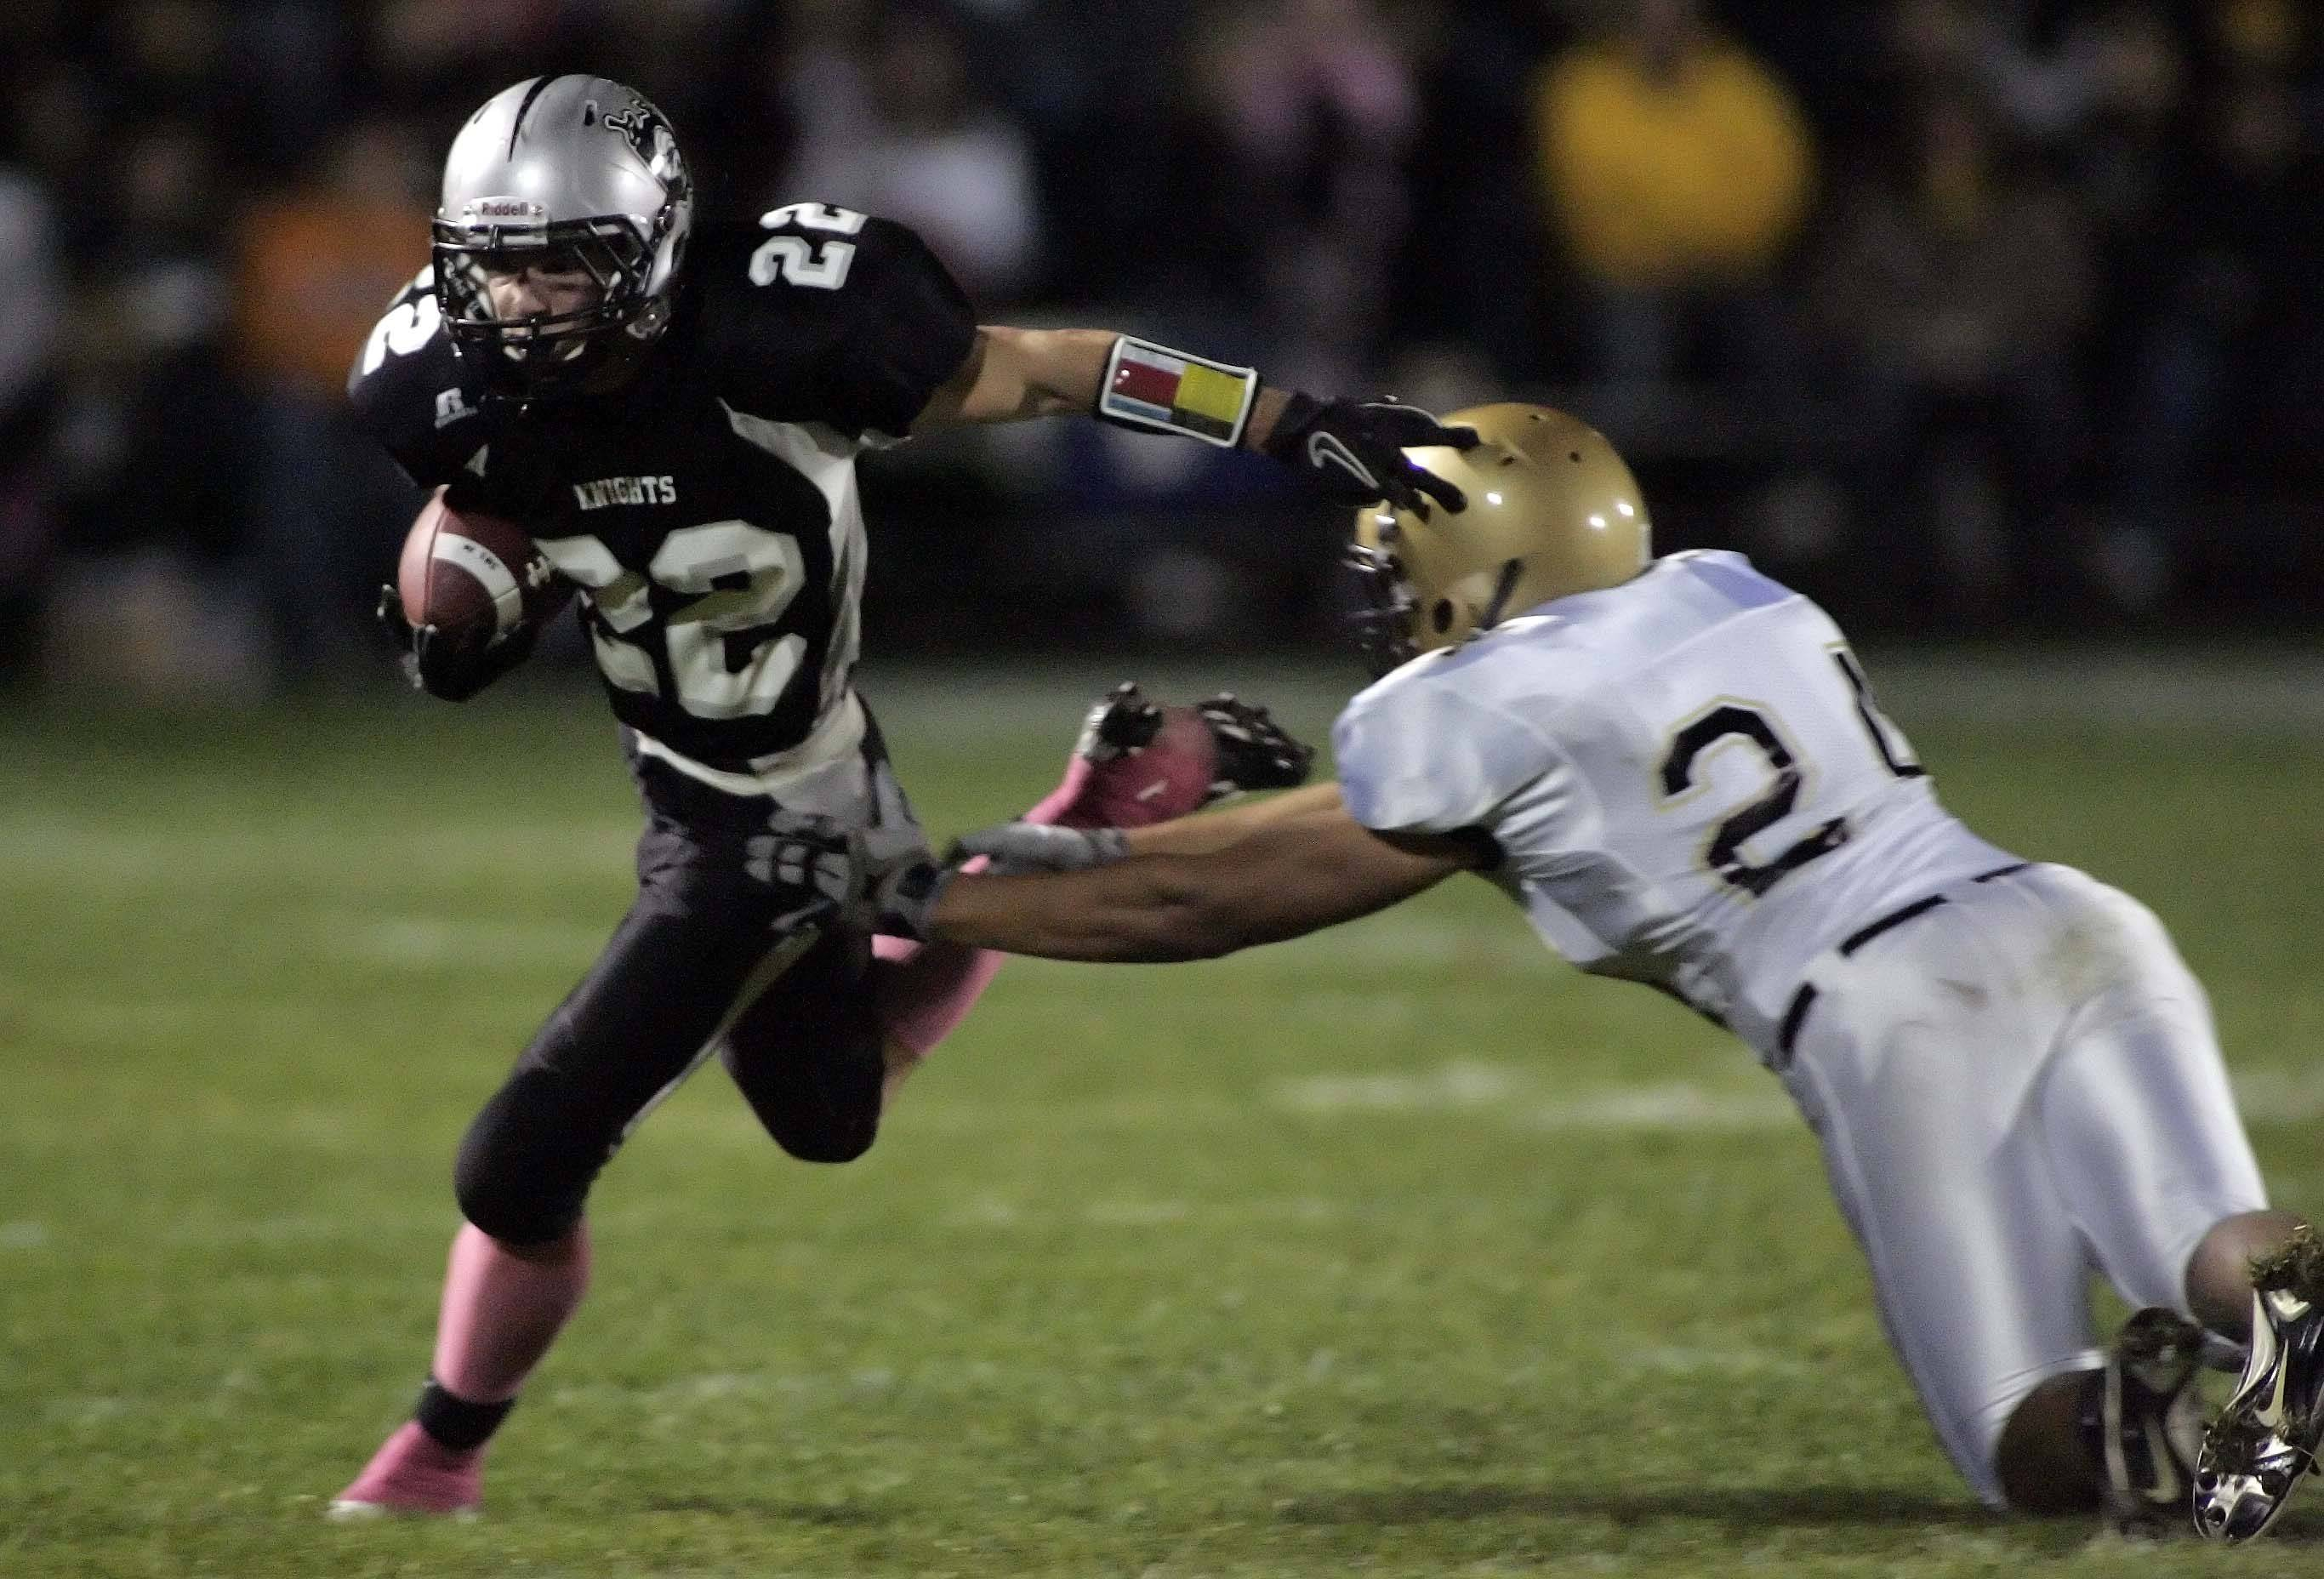 WEEK 8- Kaneland's Quinn Buschbacher works upfield past Sycamore's Marcus Dominguez.